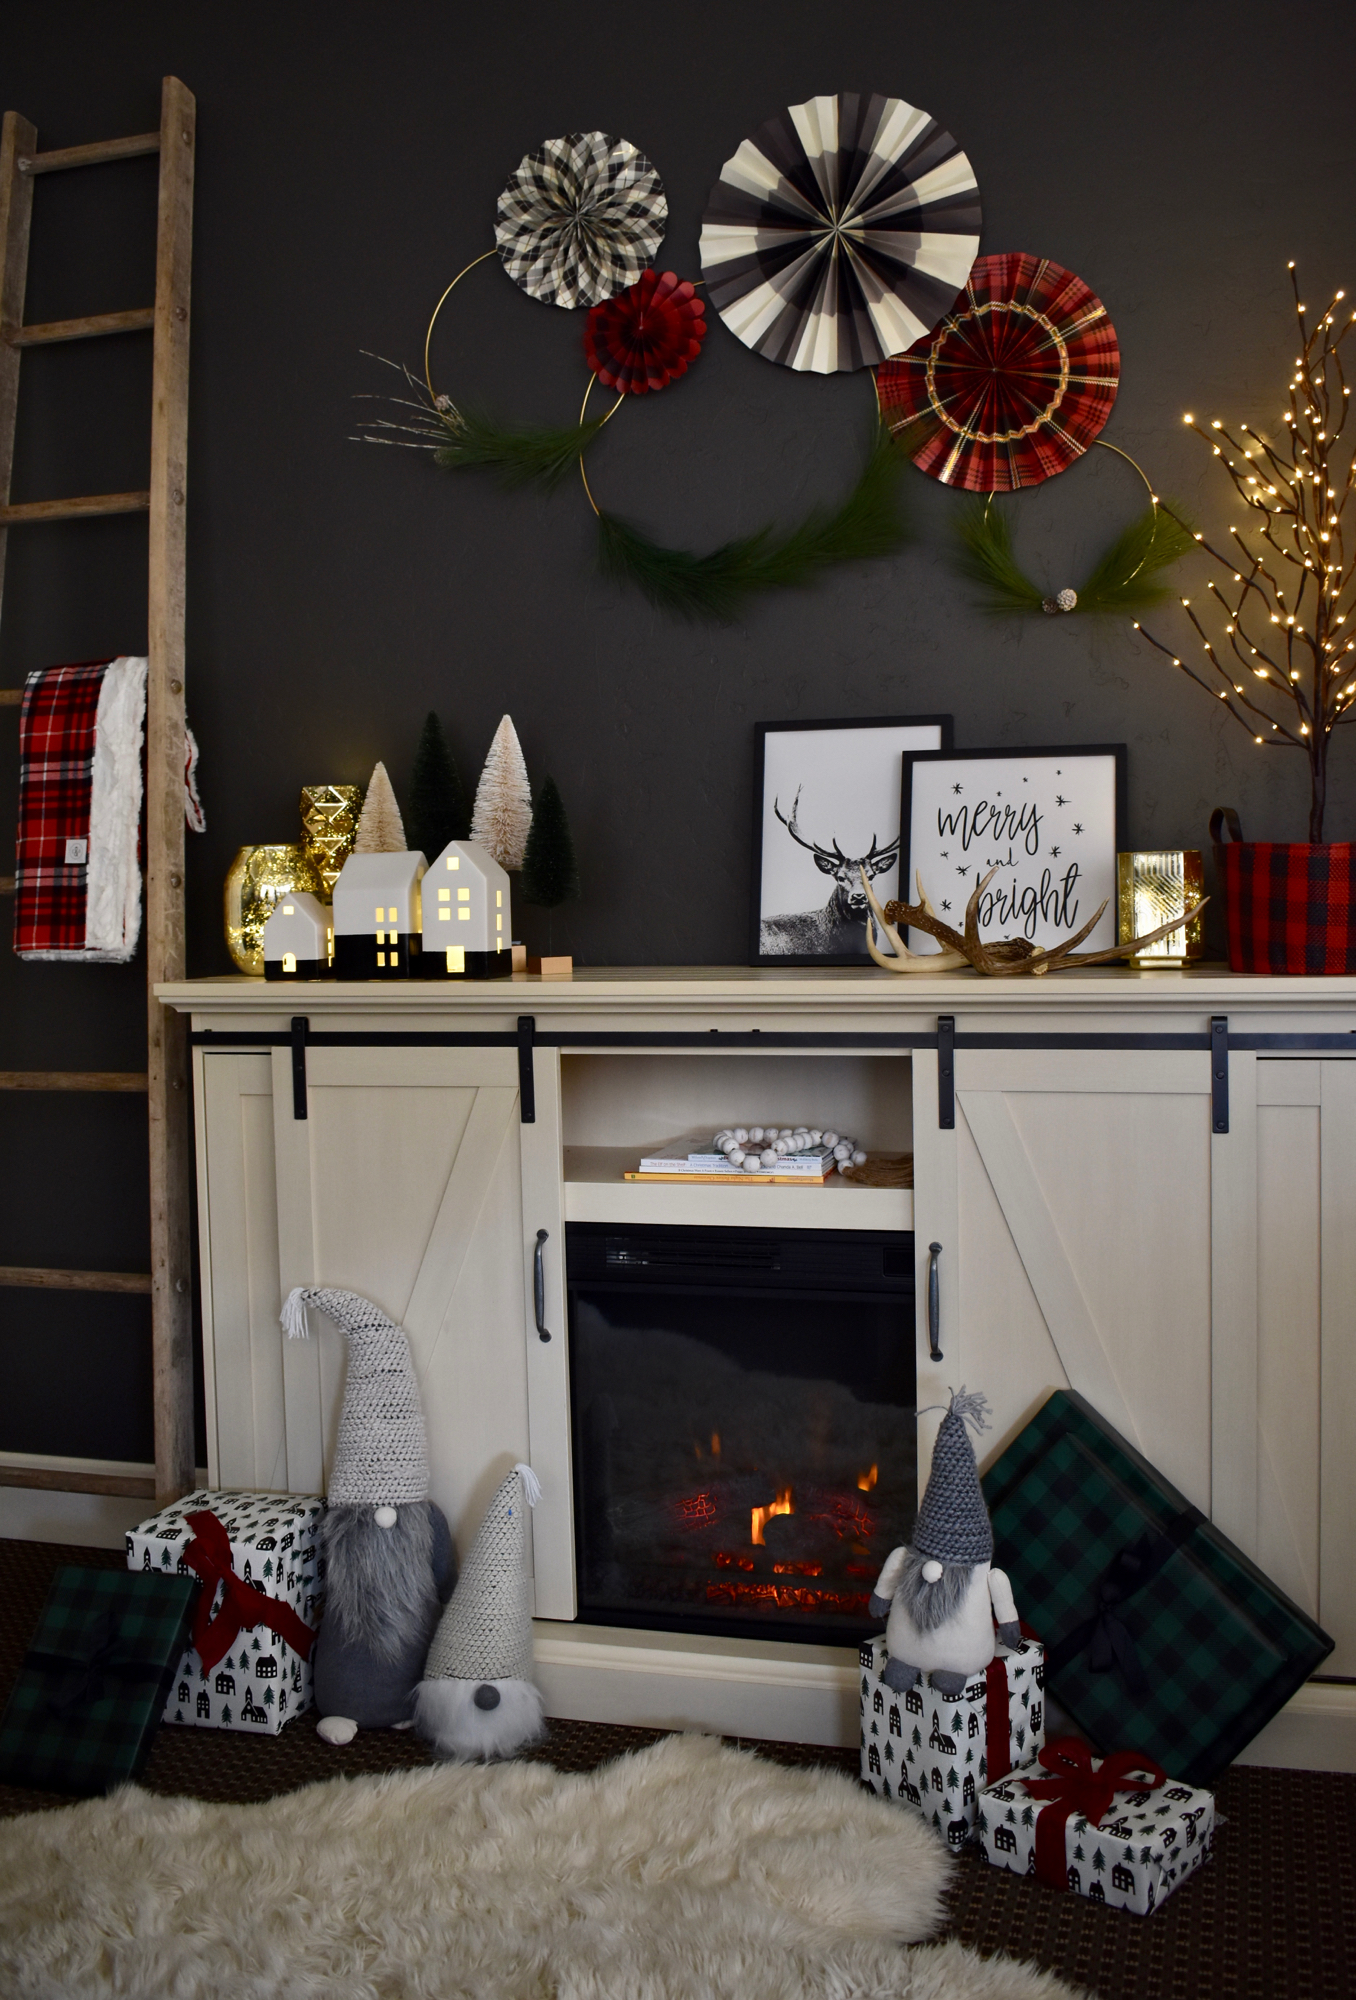 Christmas Decoration Ideas and DIY Christmas Decor Tips for Small Spaces